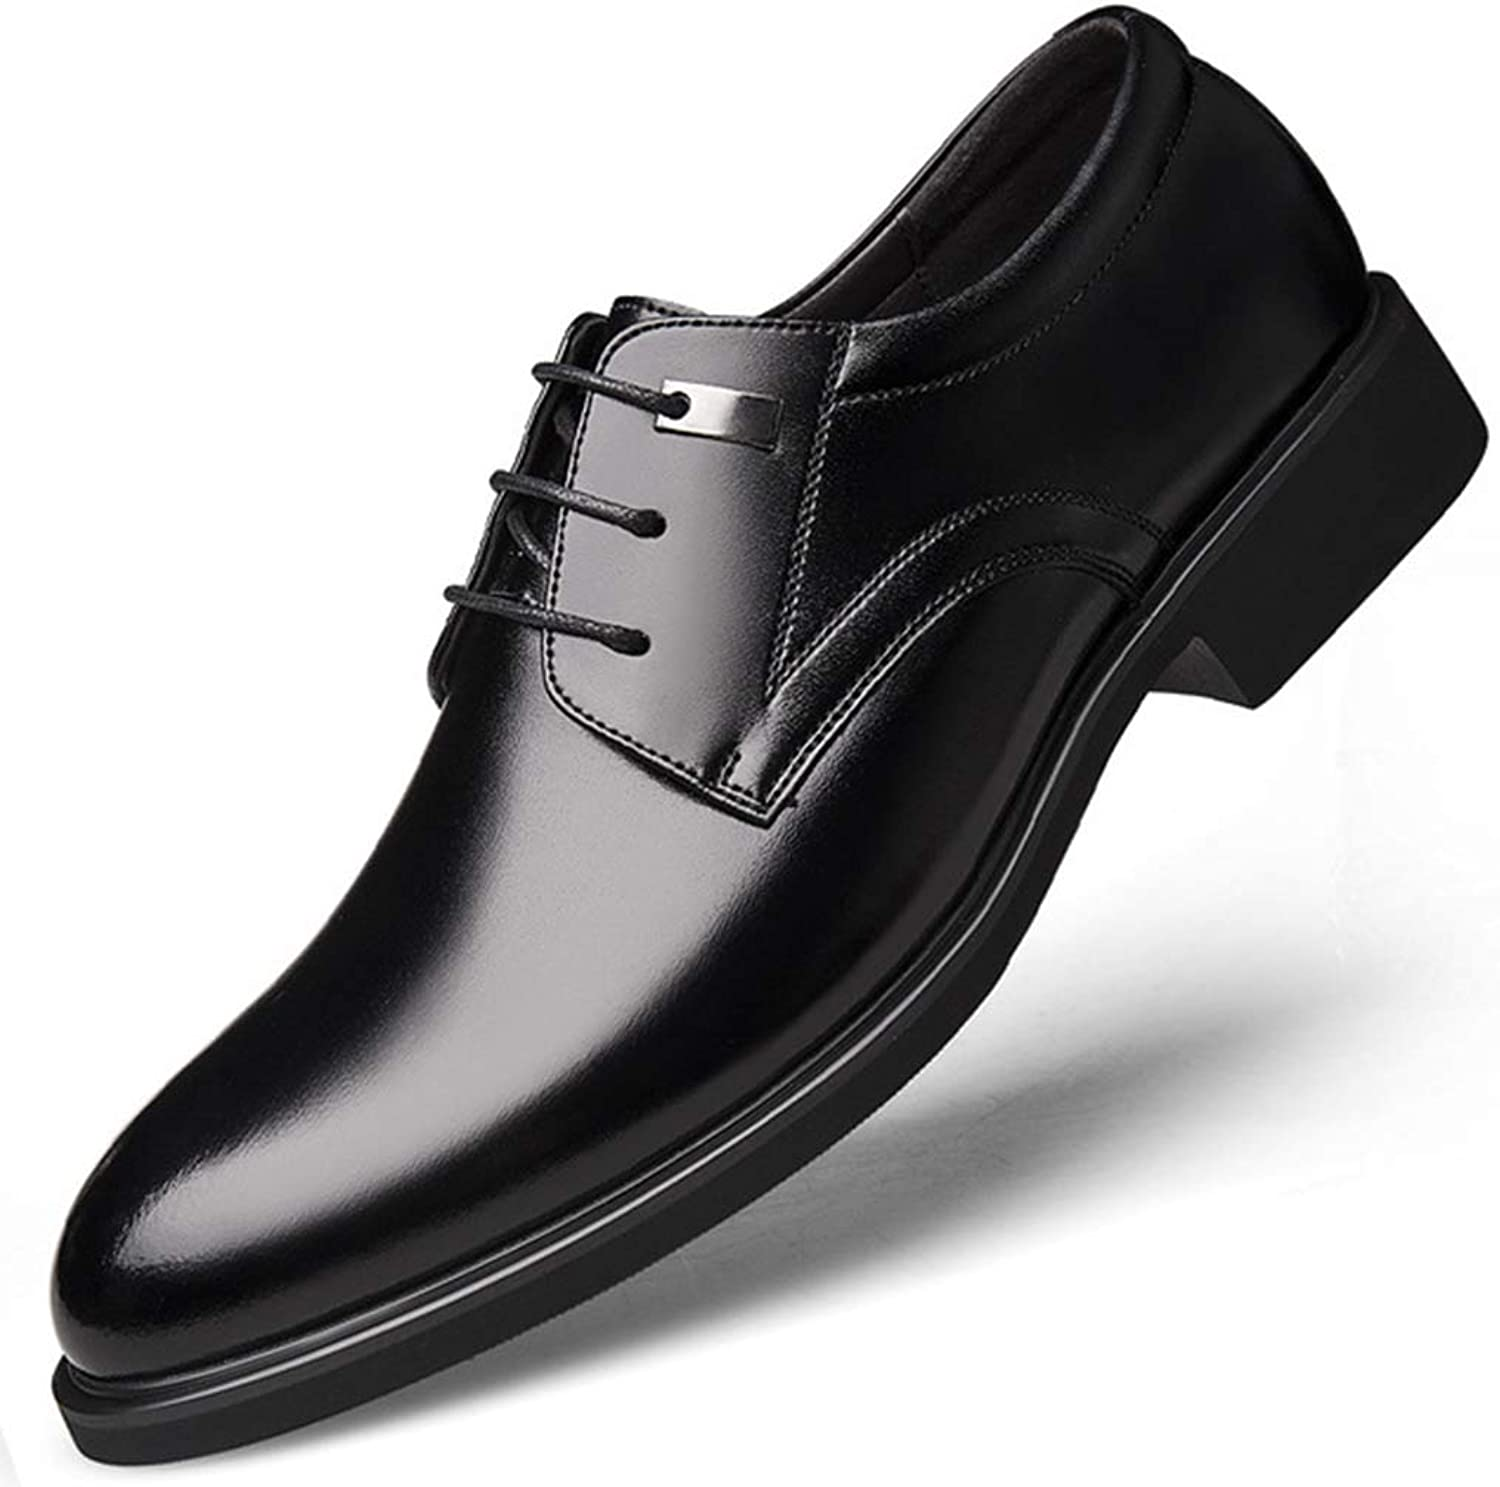 Men's Summer Formal shoes Business Dress shoes Hollow Breathable Glued Soles Footwear with A Pedal Casual Slim Fit Round Head for Men Office shoes